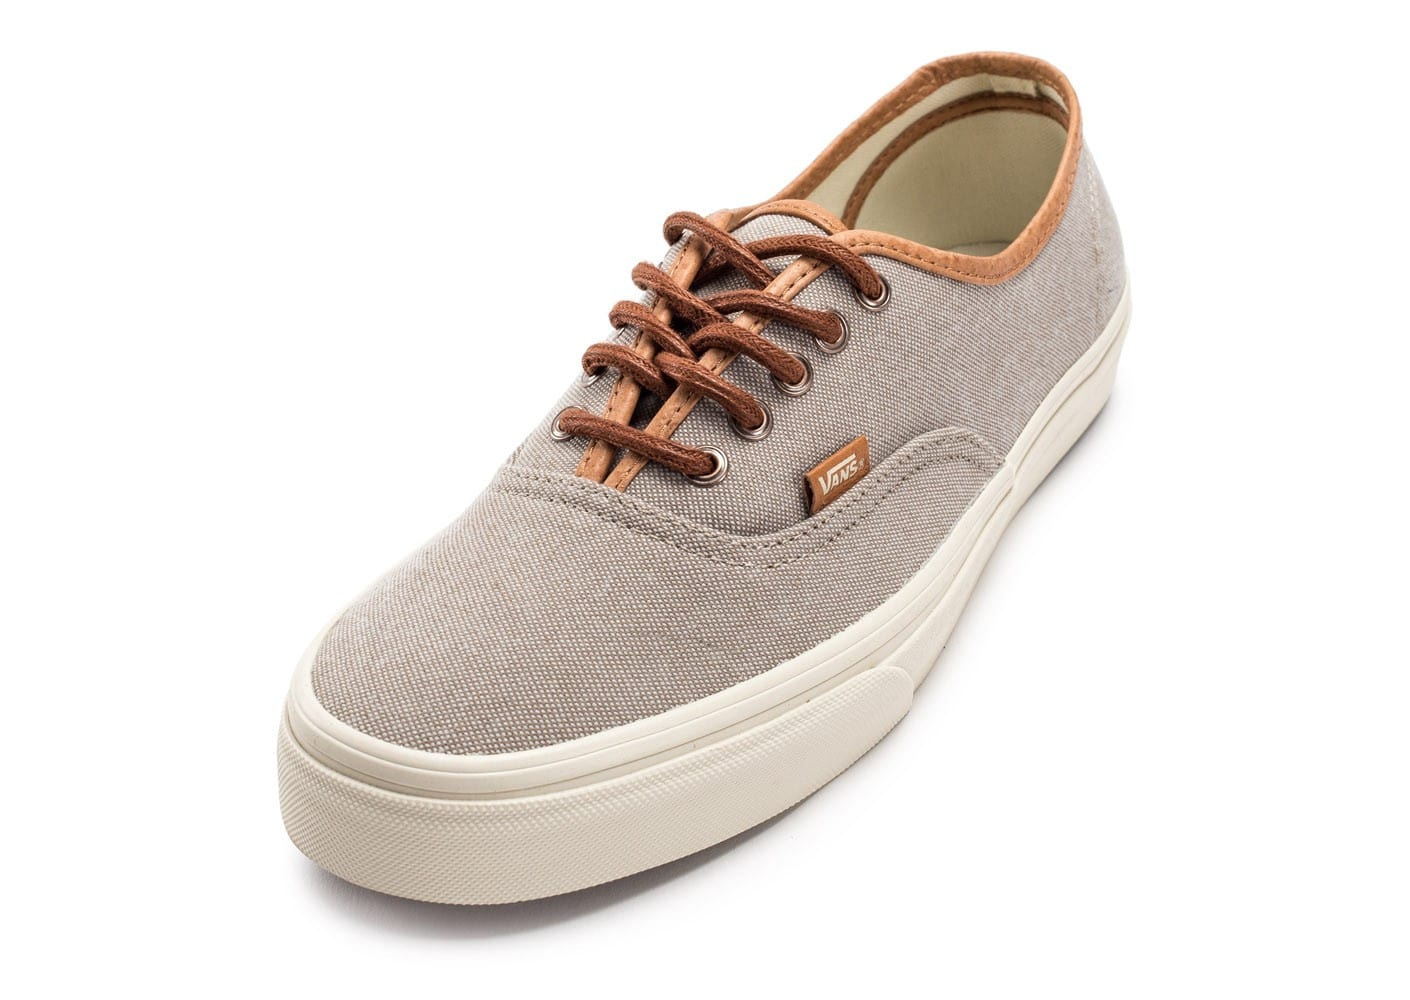 Chaussures Chausport Baskets Vans Homme Dx Beige Authentic T3lFJucK1